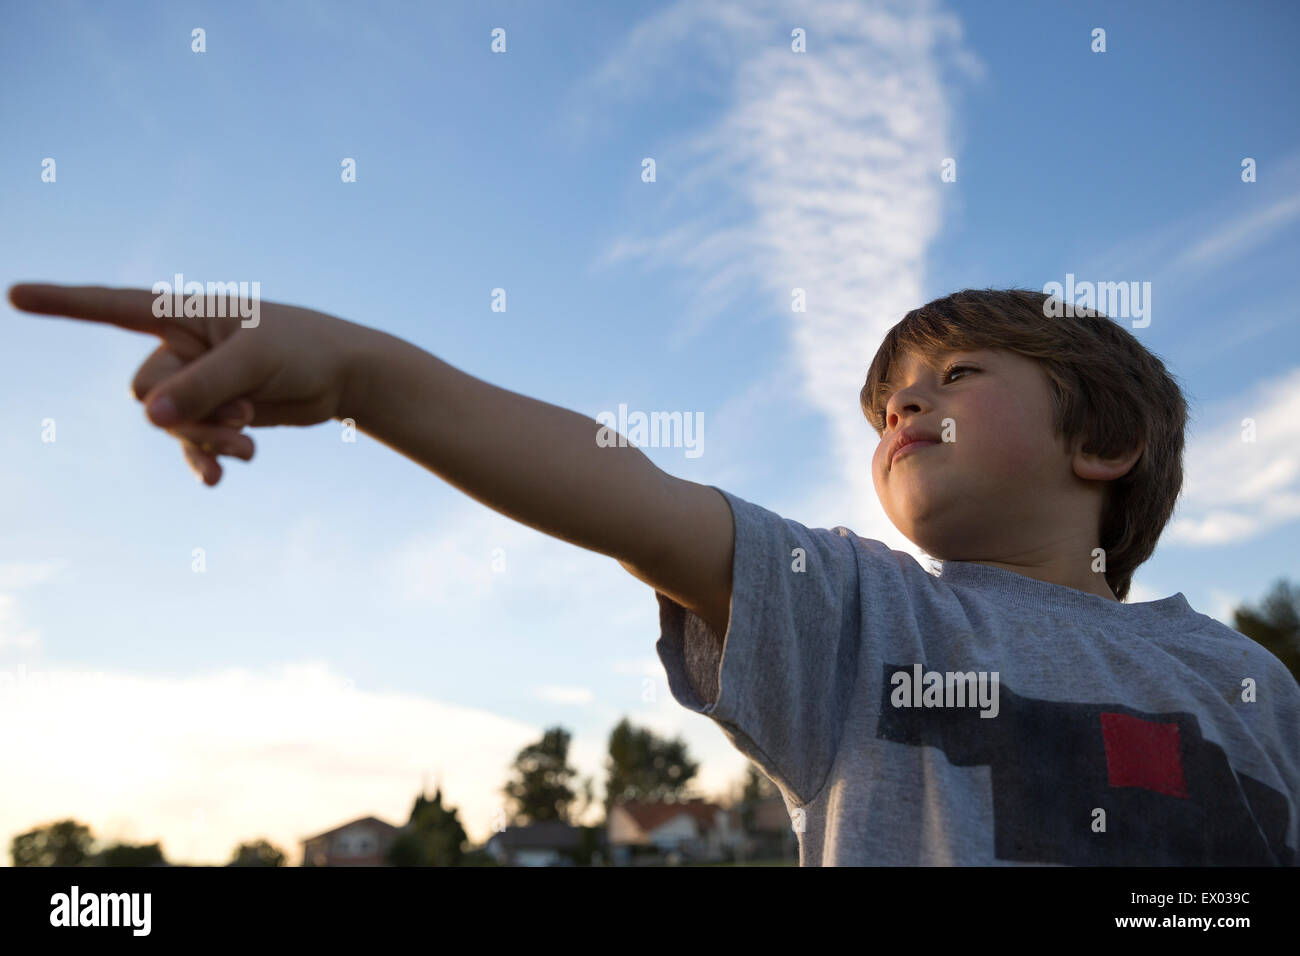 Low angle view of boy pointing finger in park Photo Stock